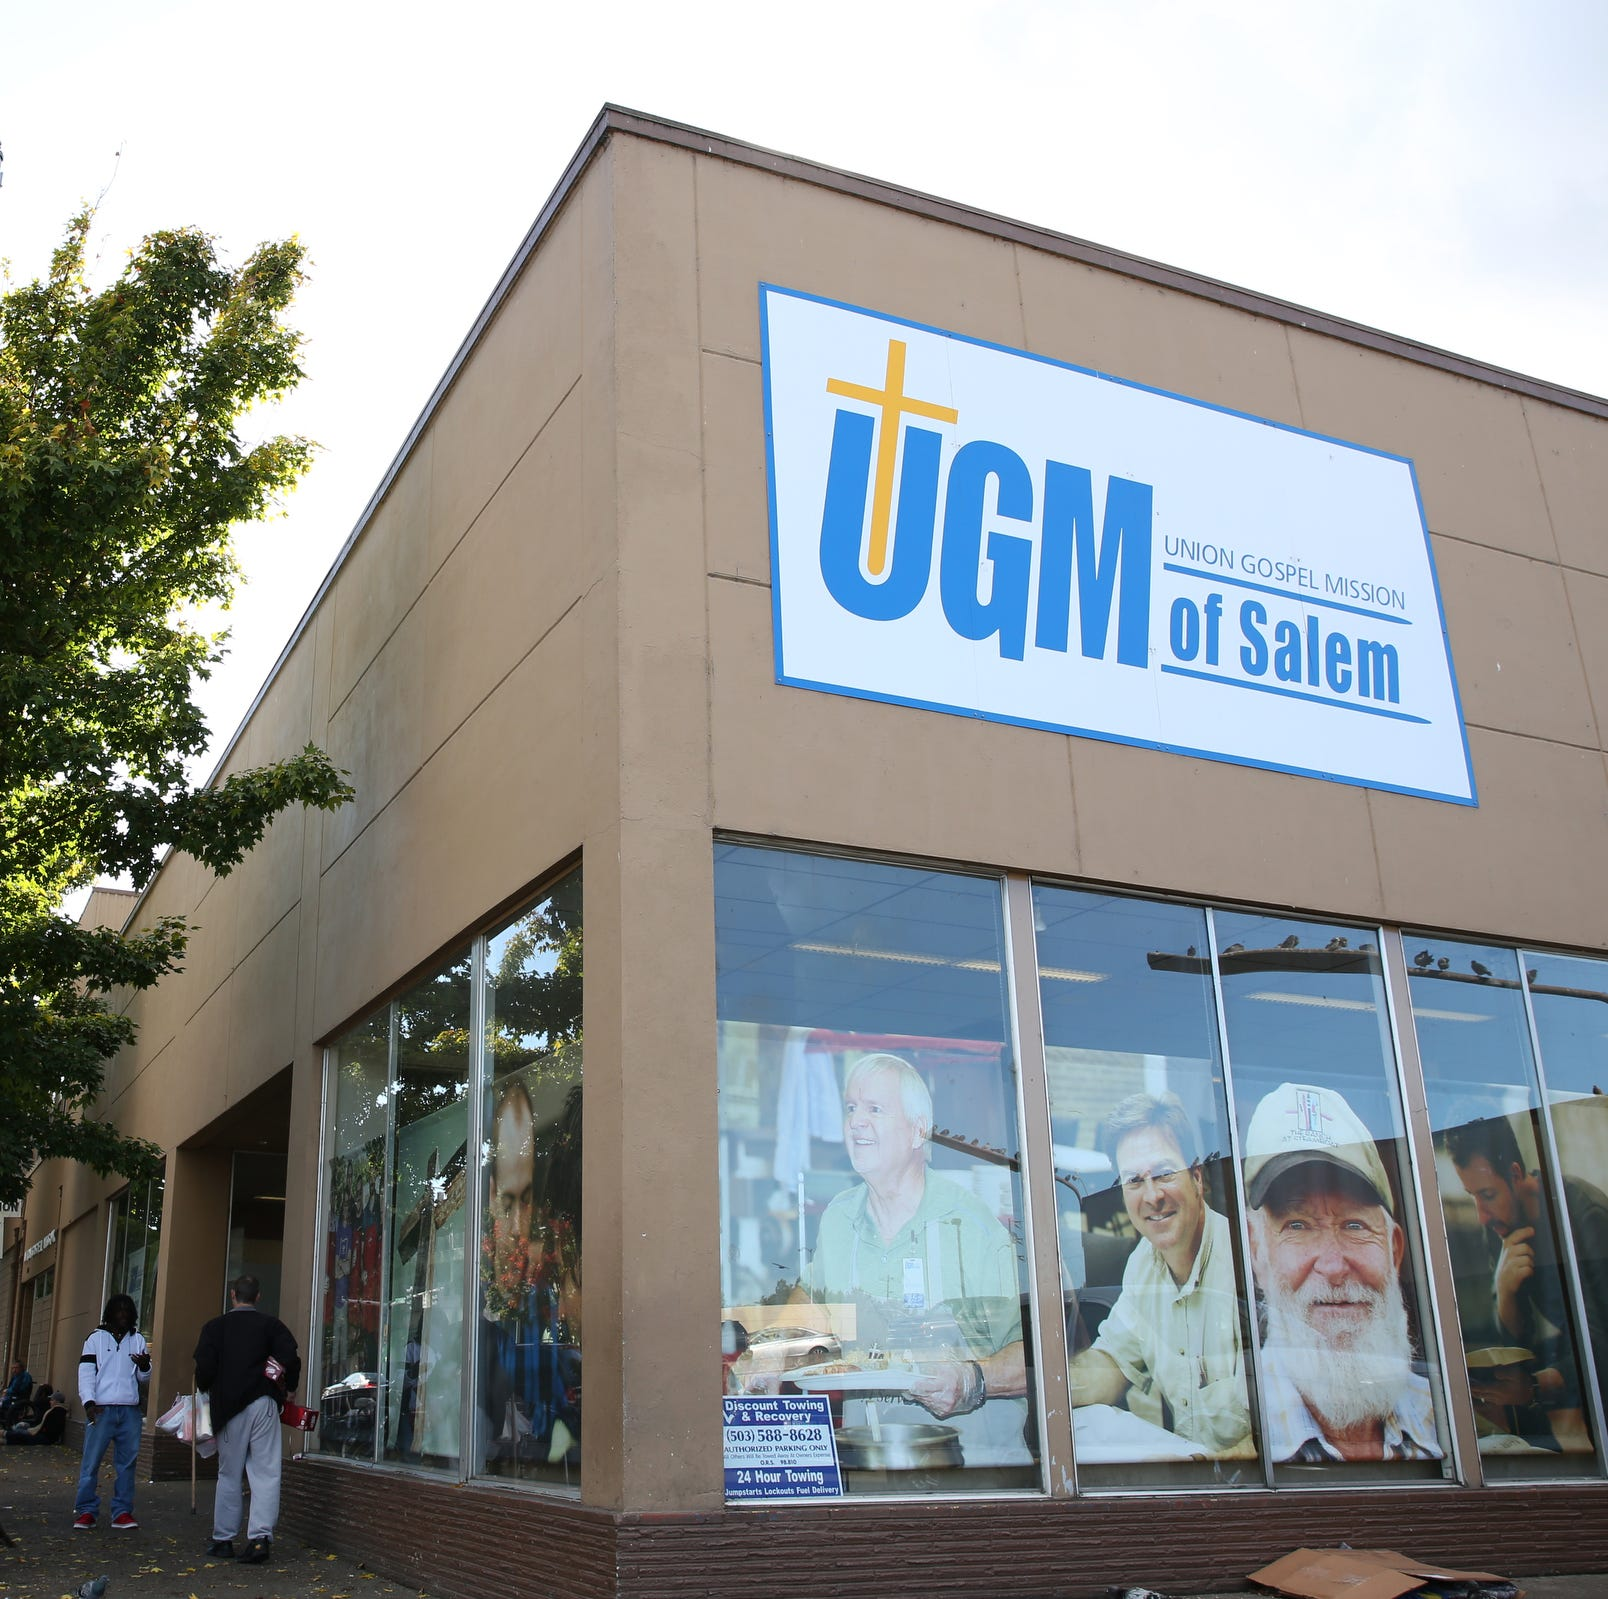 Toxic gasoline becomes bargaining chip in sale of Union Gospel Mission shelter